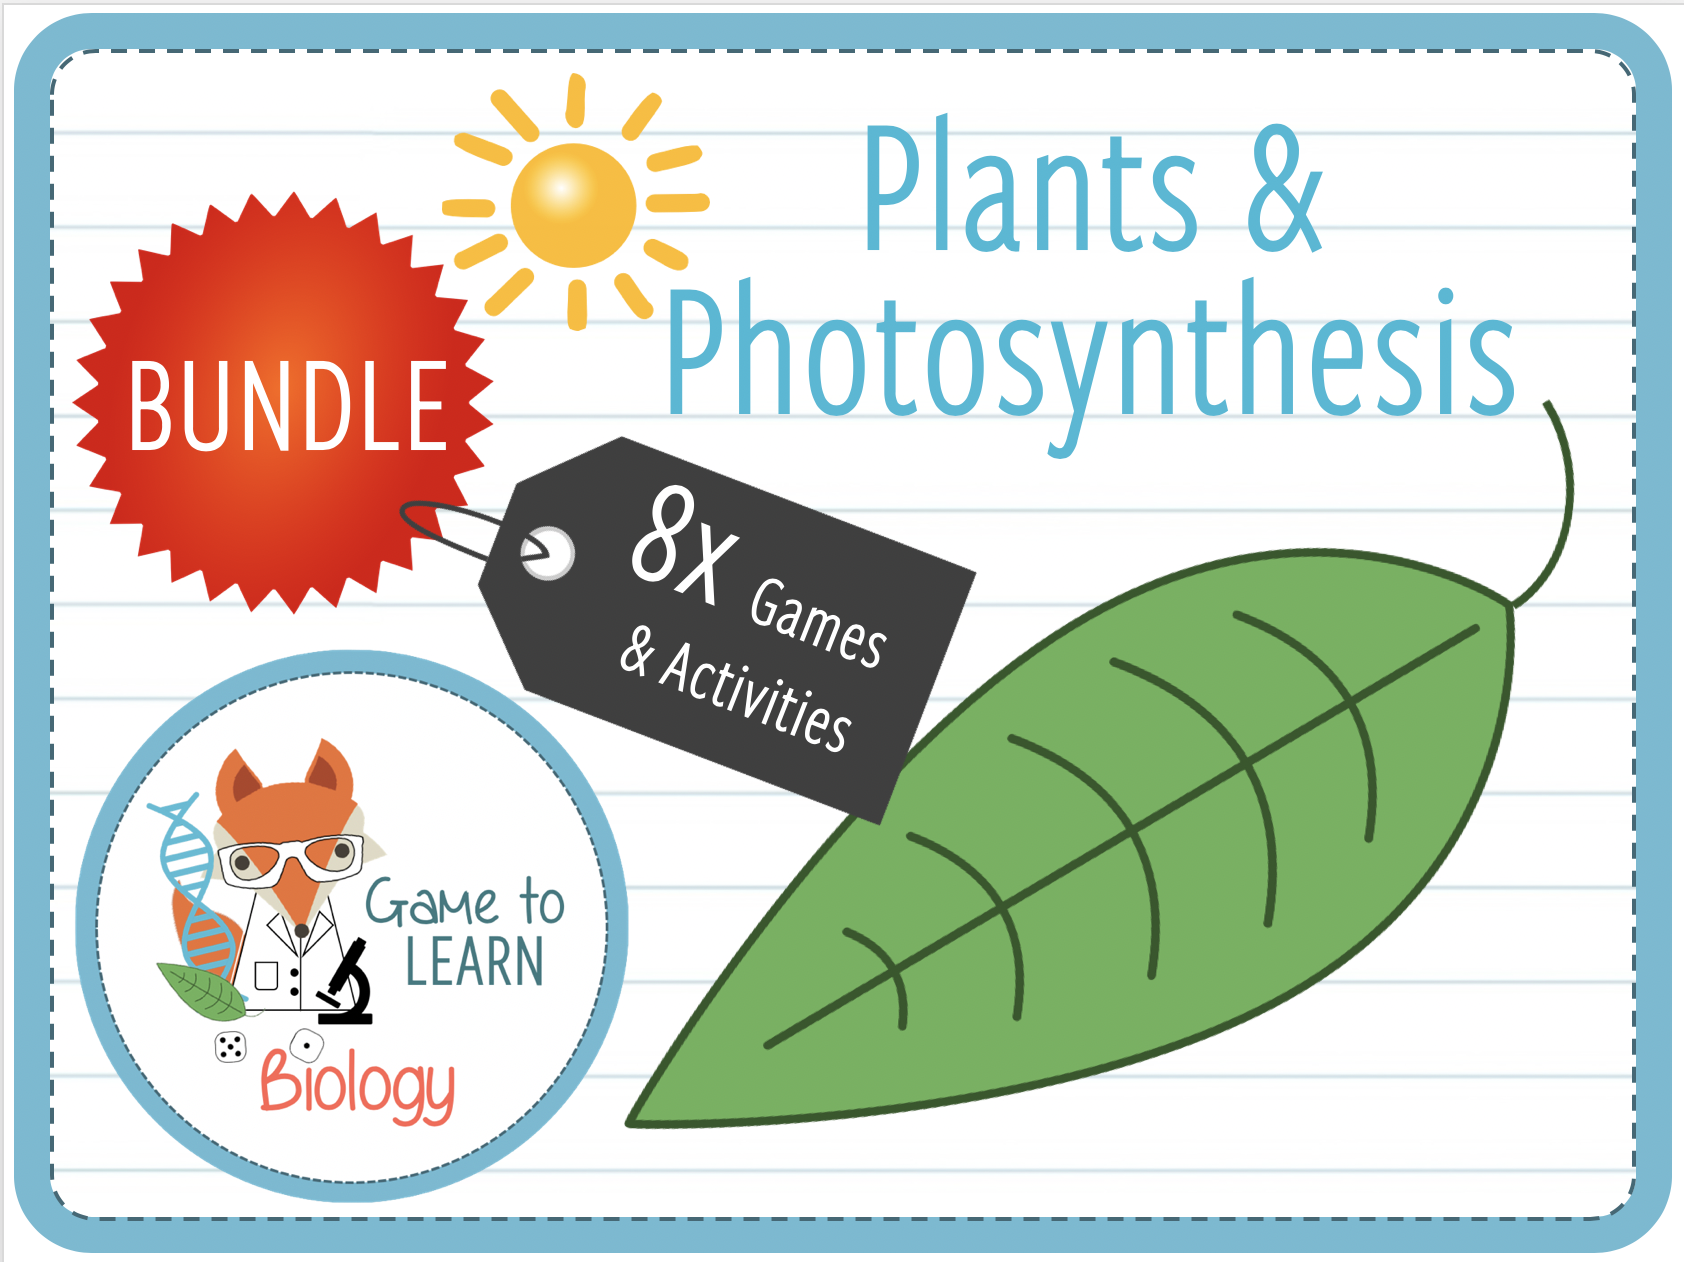 Plants & Photosynthesis - 8x Games and Activities (KS3/4)